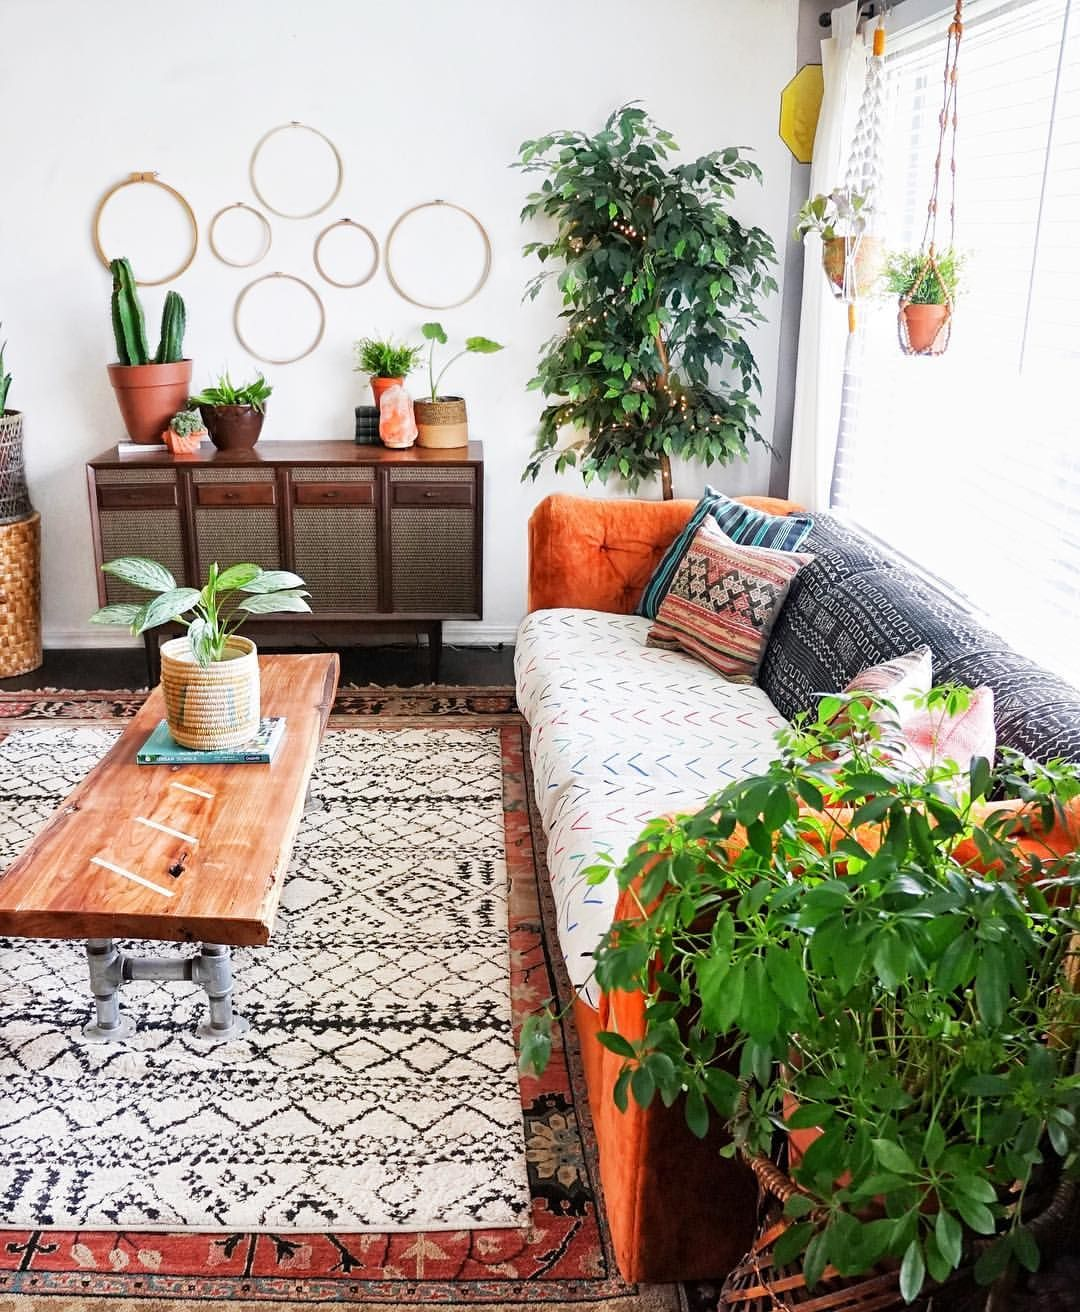 Today S Goal Tune Down The Orange In My Front Room My Solution Was To Use Mudcloth On The Orange Sof Bohemian Style Living Room Living Room Decor Home Decor #orange #sofa #living #room